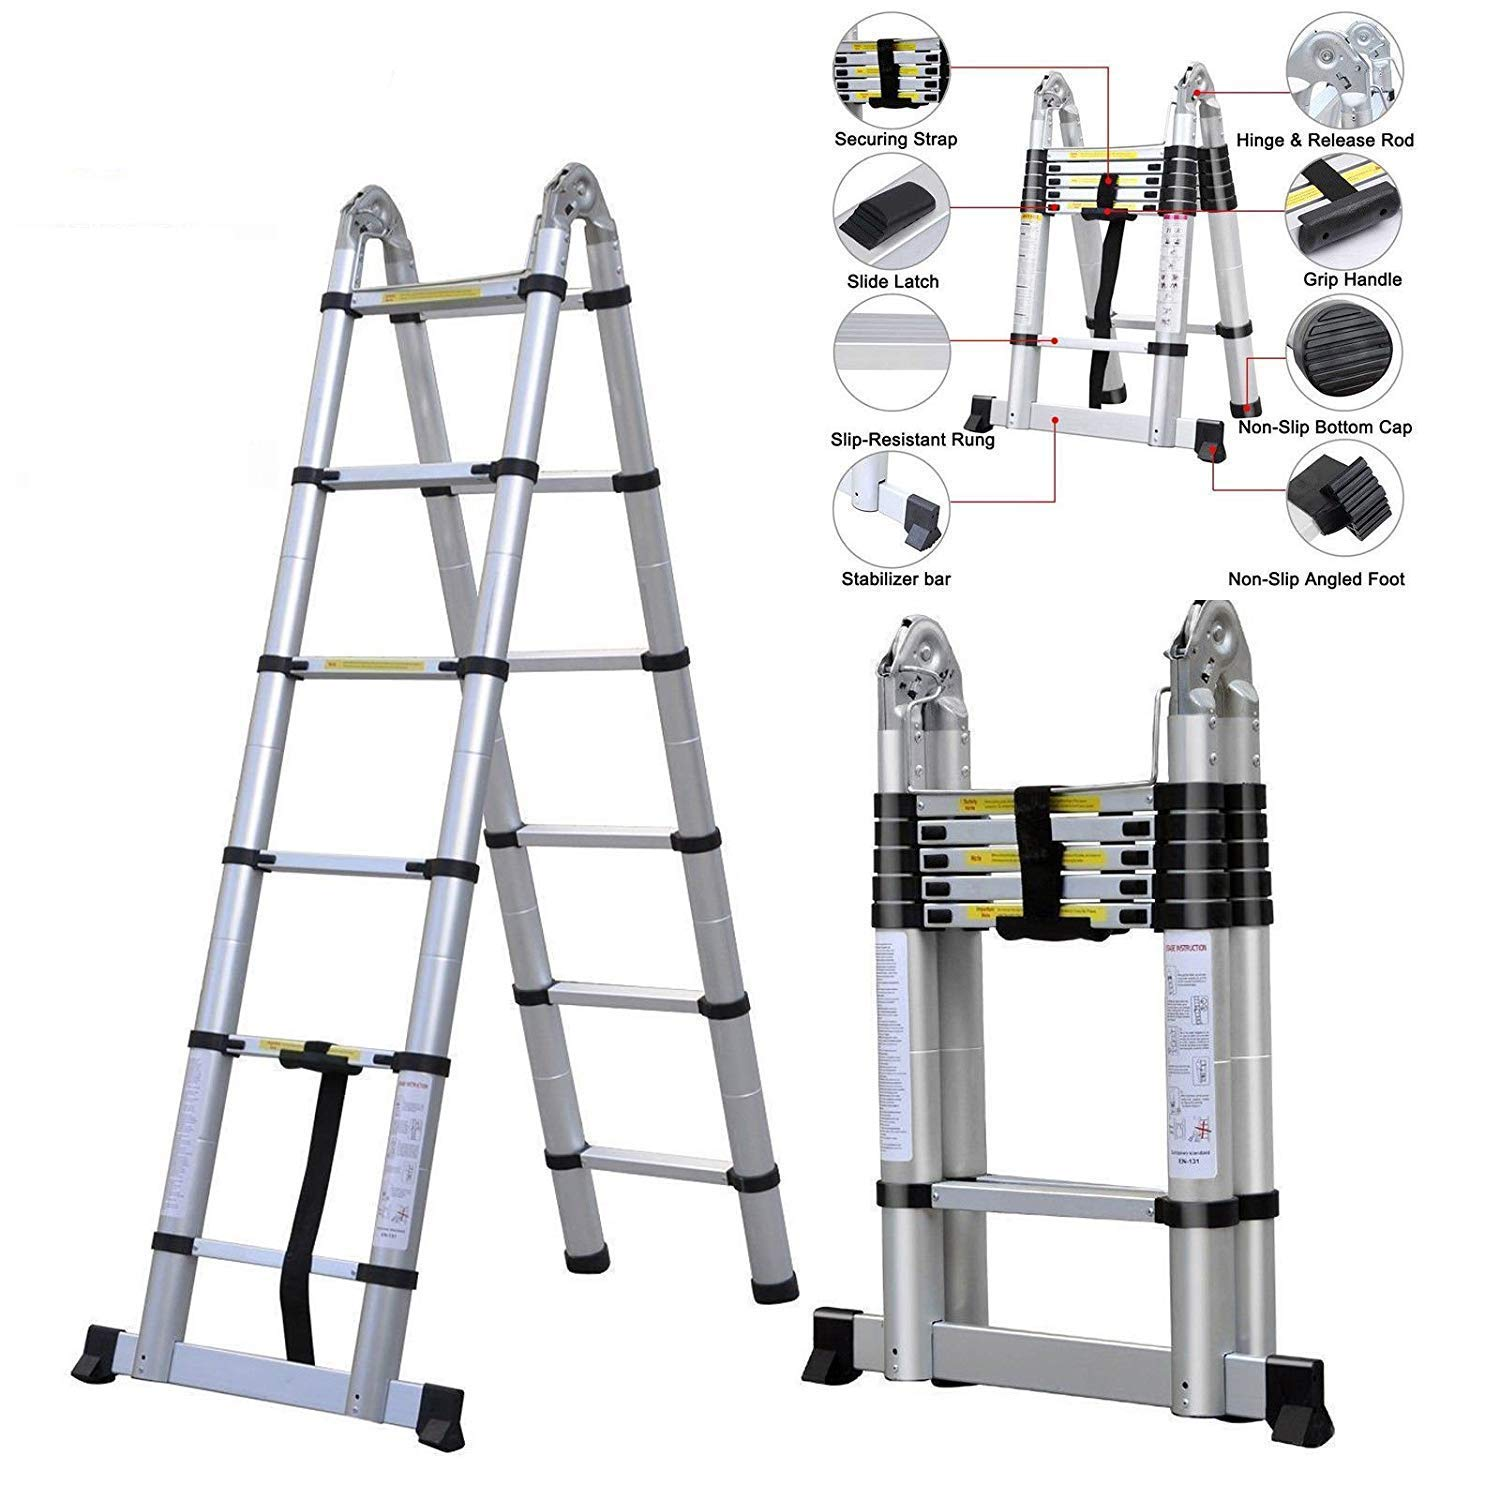 3.8M Multi-Purpose Aluminum Telescopic Ladder Portable Extendable A-Frame Ladder Heavy Duty Ladder - for Loft Indoor Outdoor Office House - Max 150kg - 12 Steps AutoBaBa